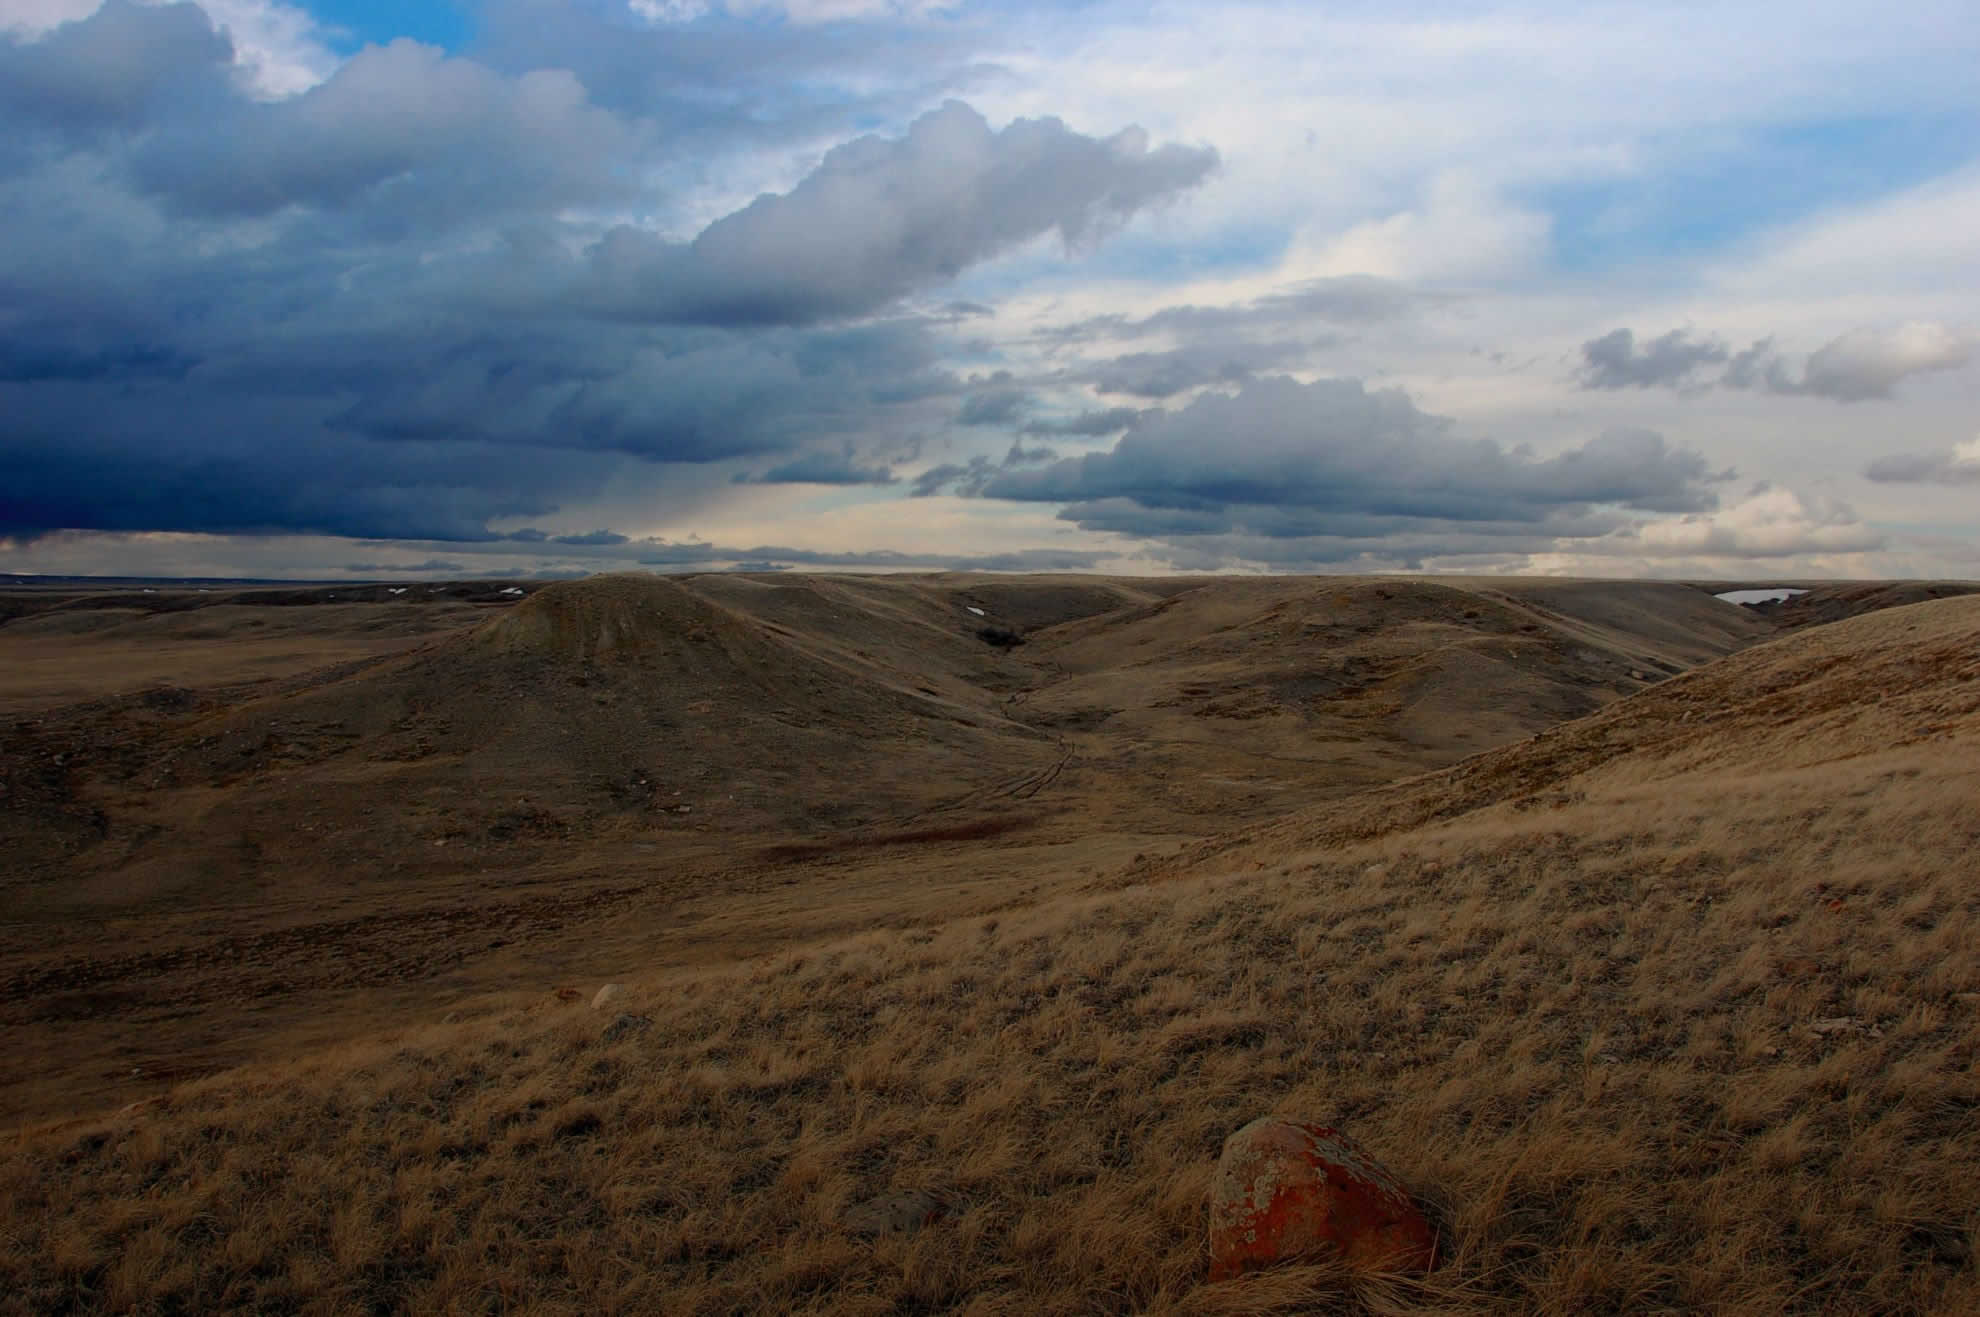 Landscape View of Grasslands National Park